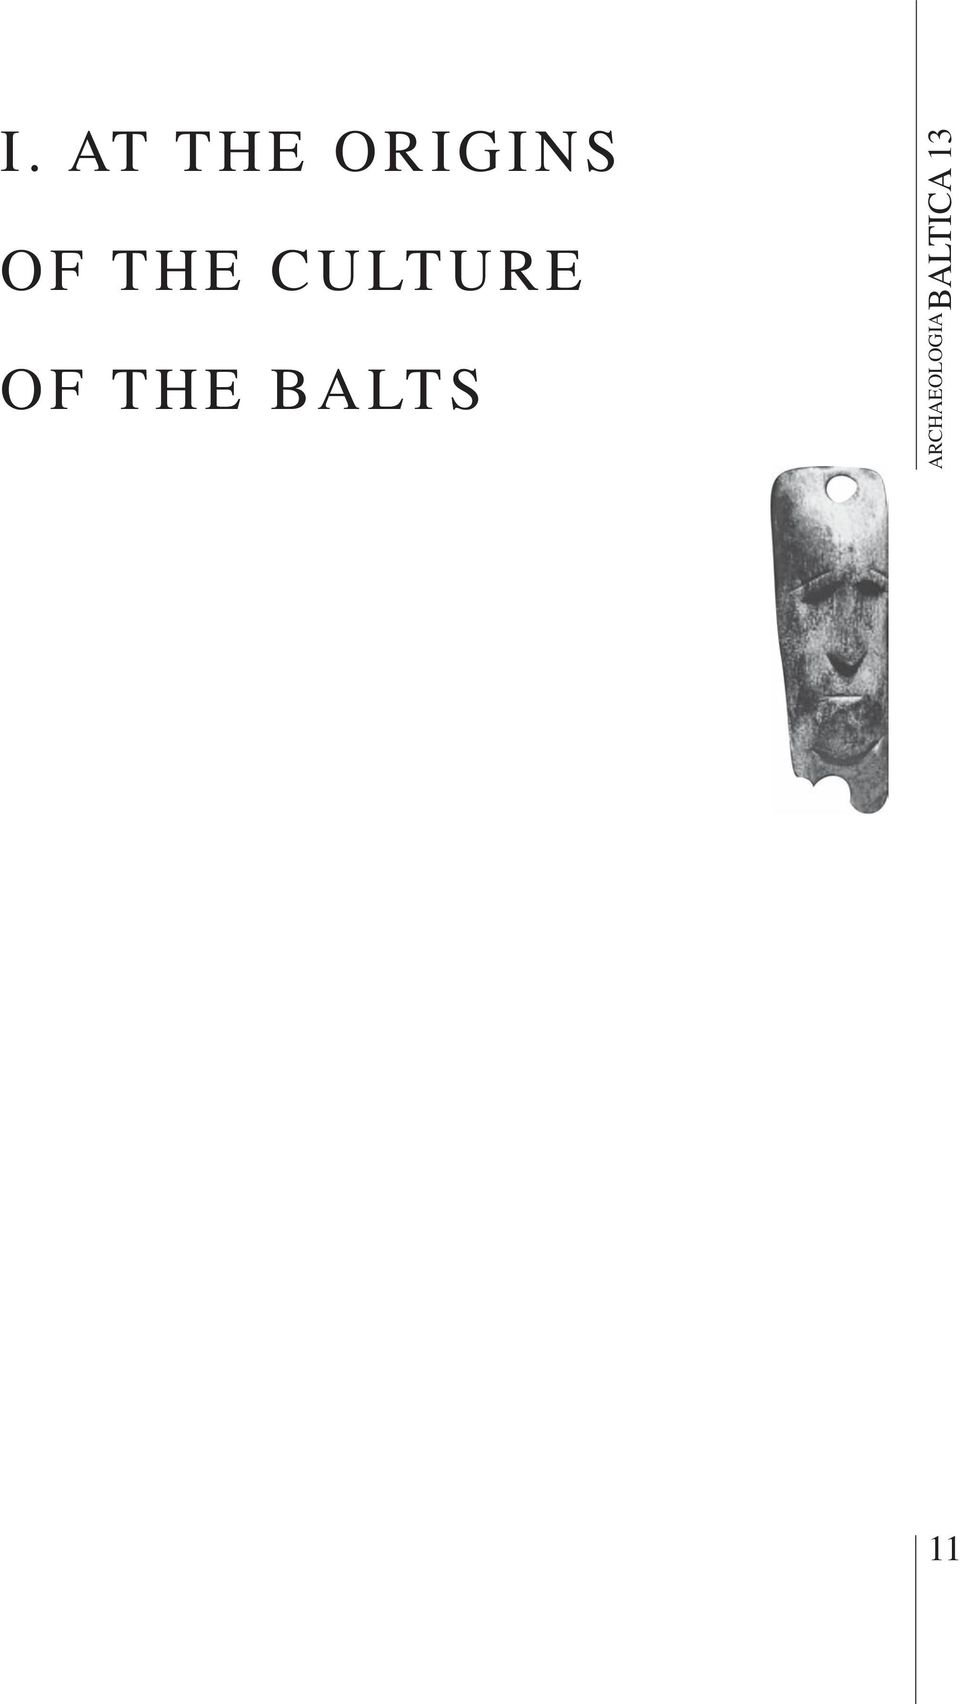 THE BALTS